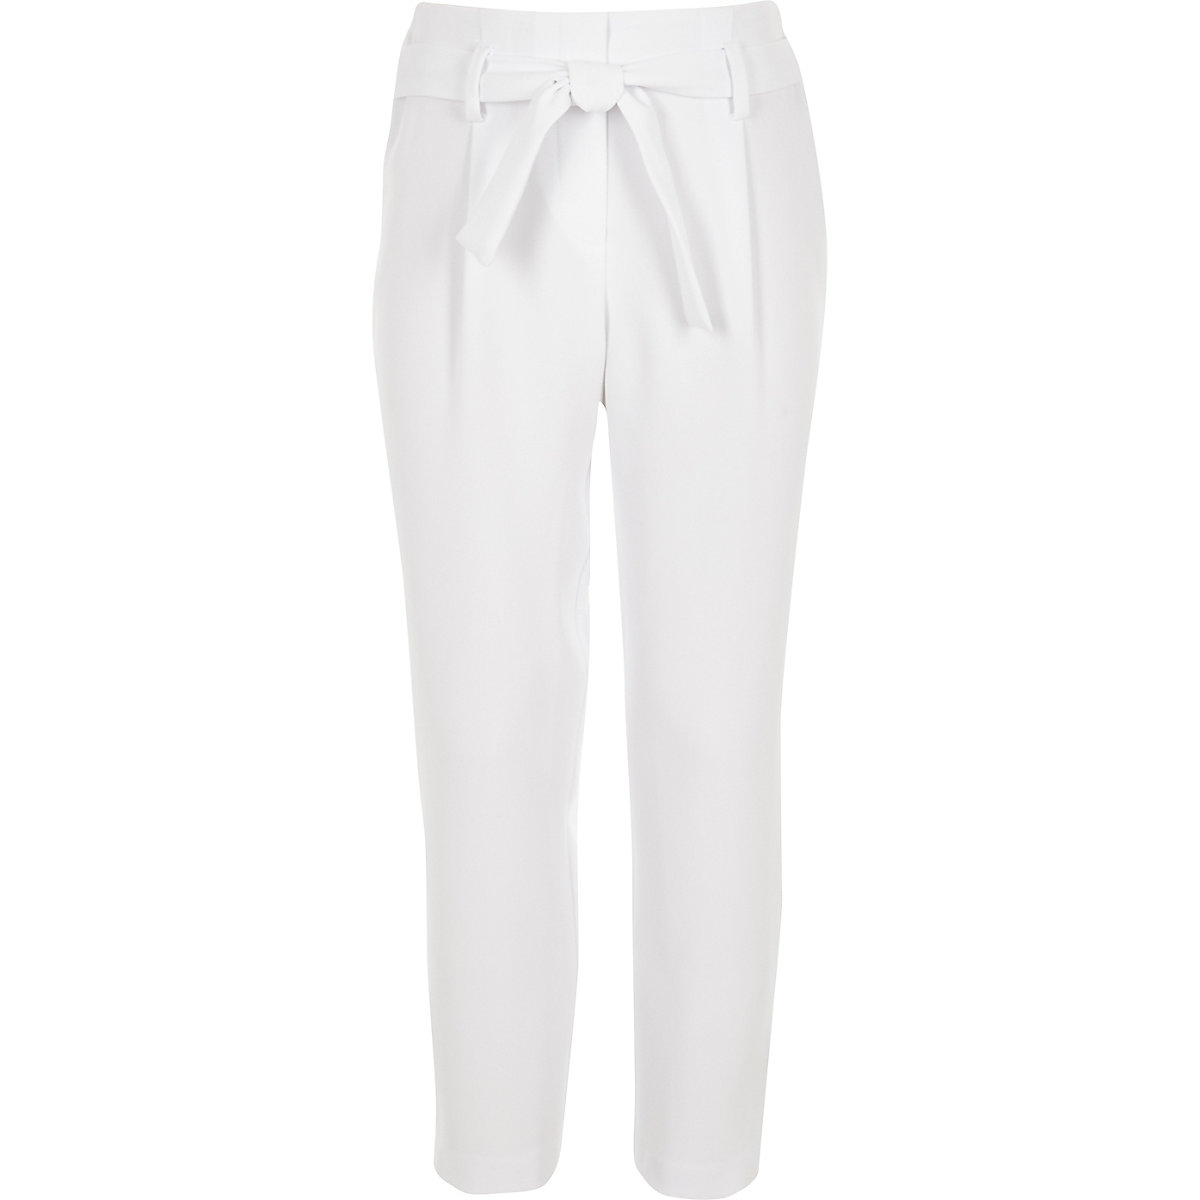 Girls white tapered tie waist pants